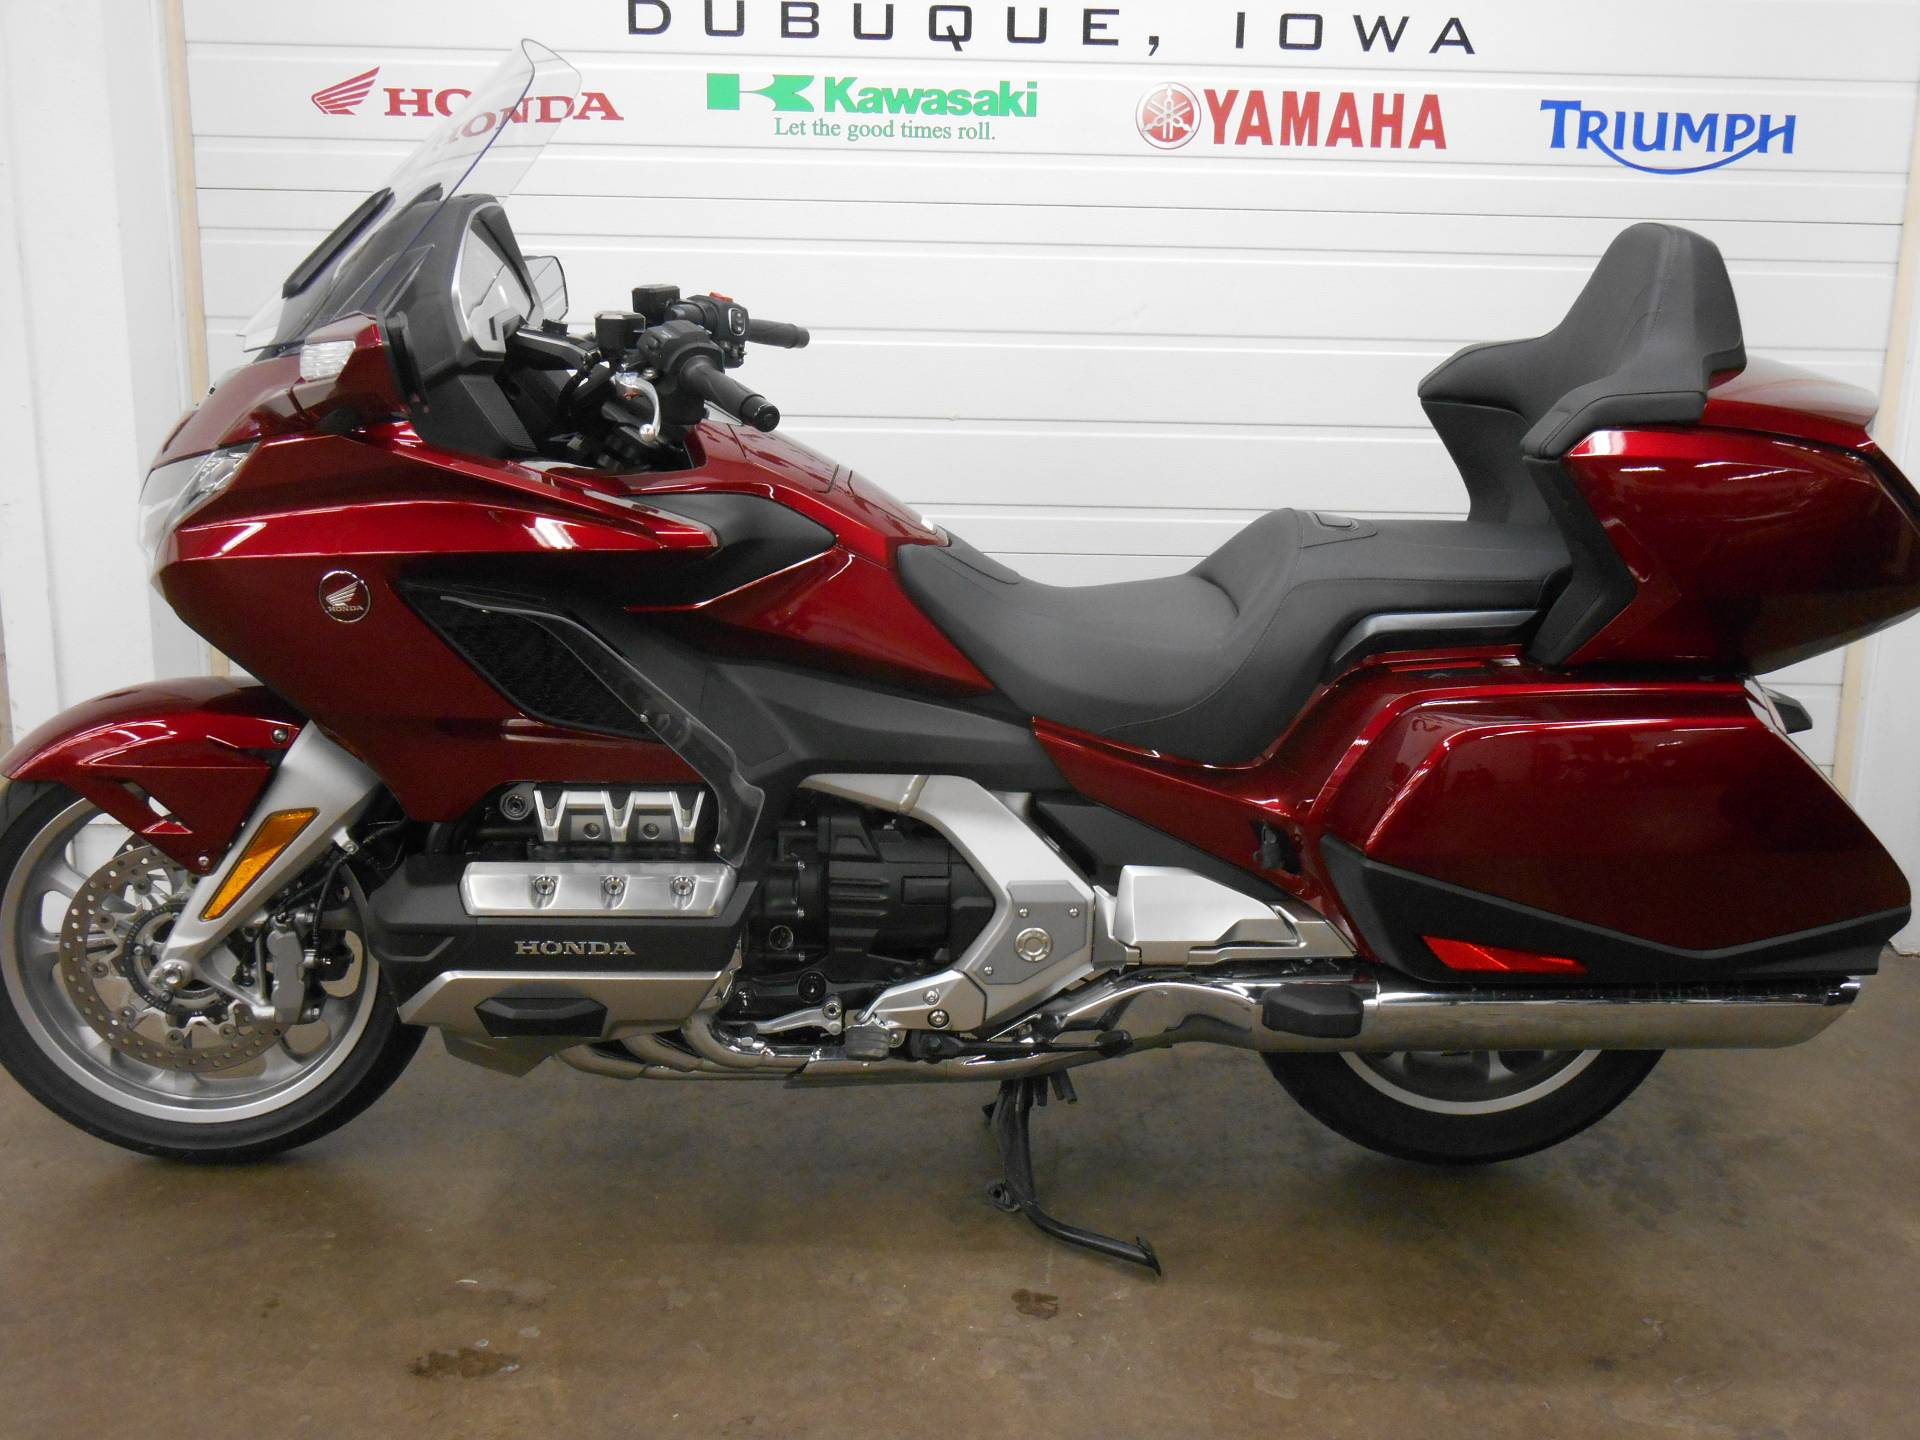 2019 Honda Gold Wing Tour in Dubuque, Iowa - Photo 1